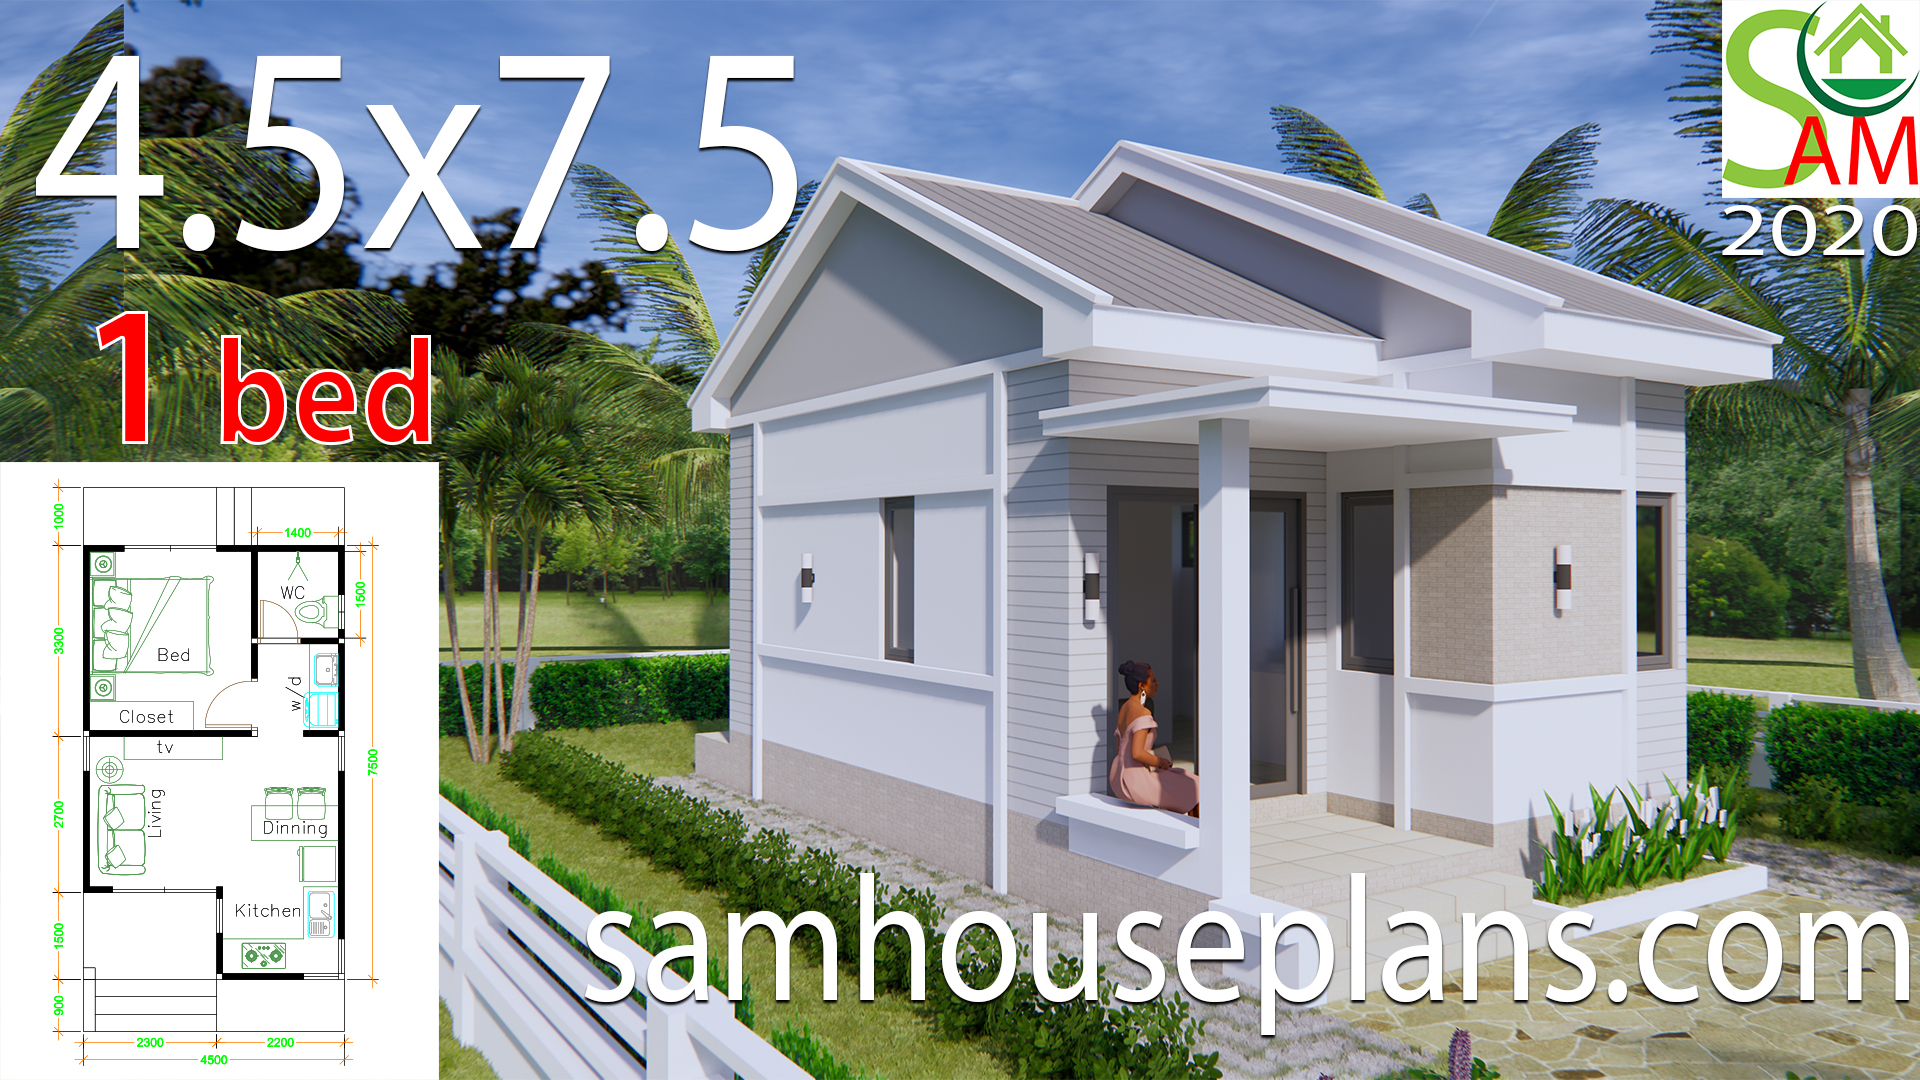 Small House Plans 4 5x7 5 With One Bedroom Gable Roof Samhouseplans